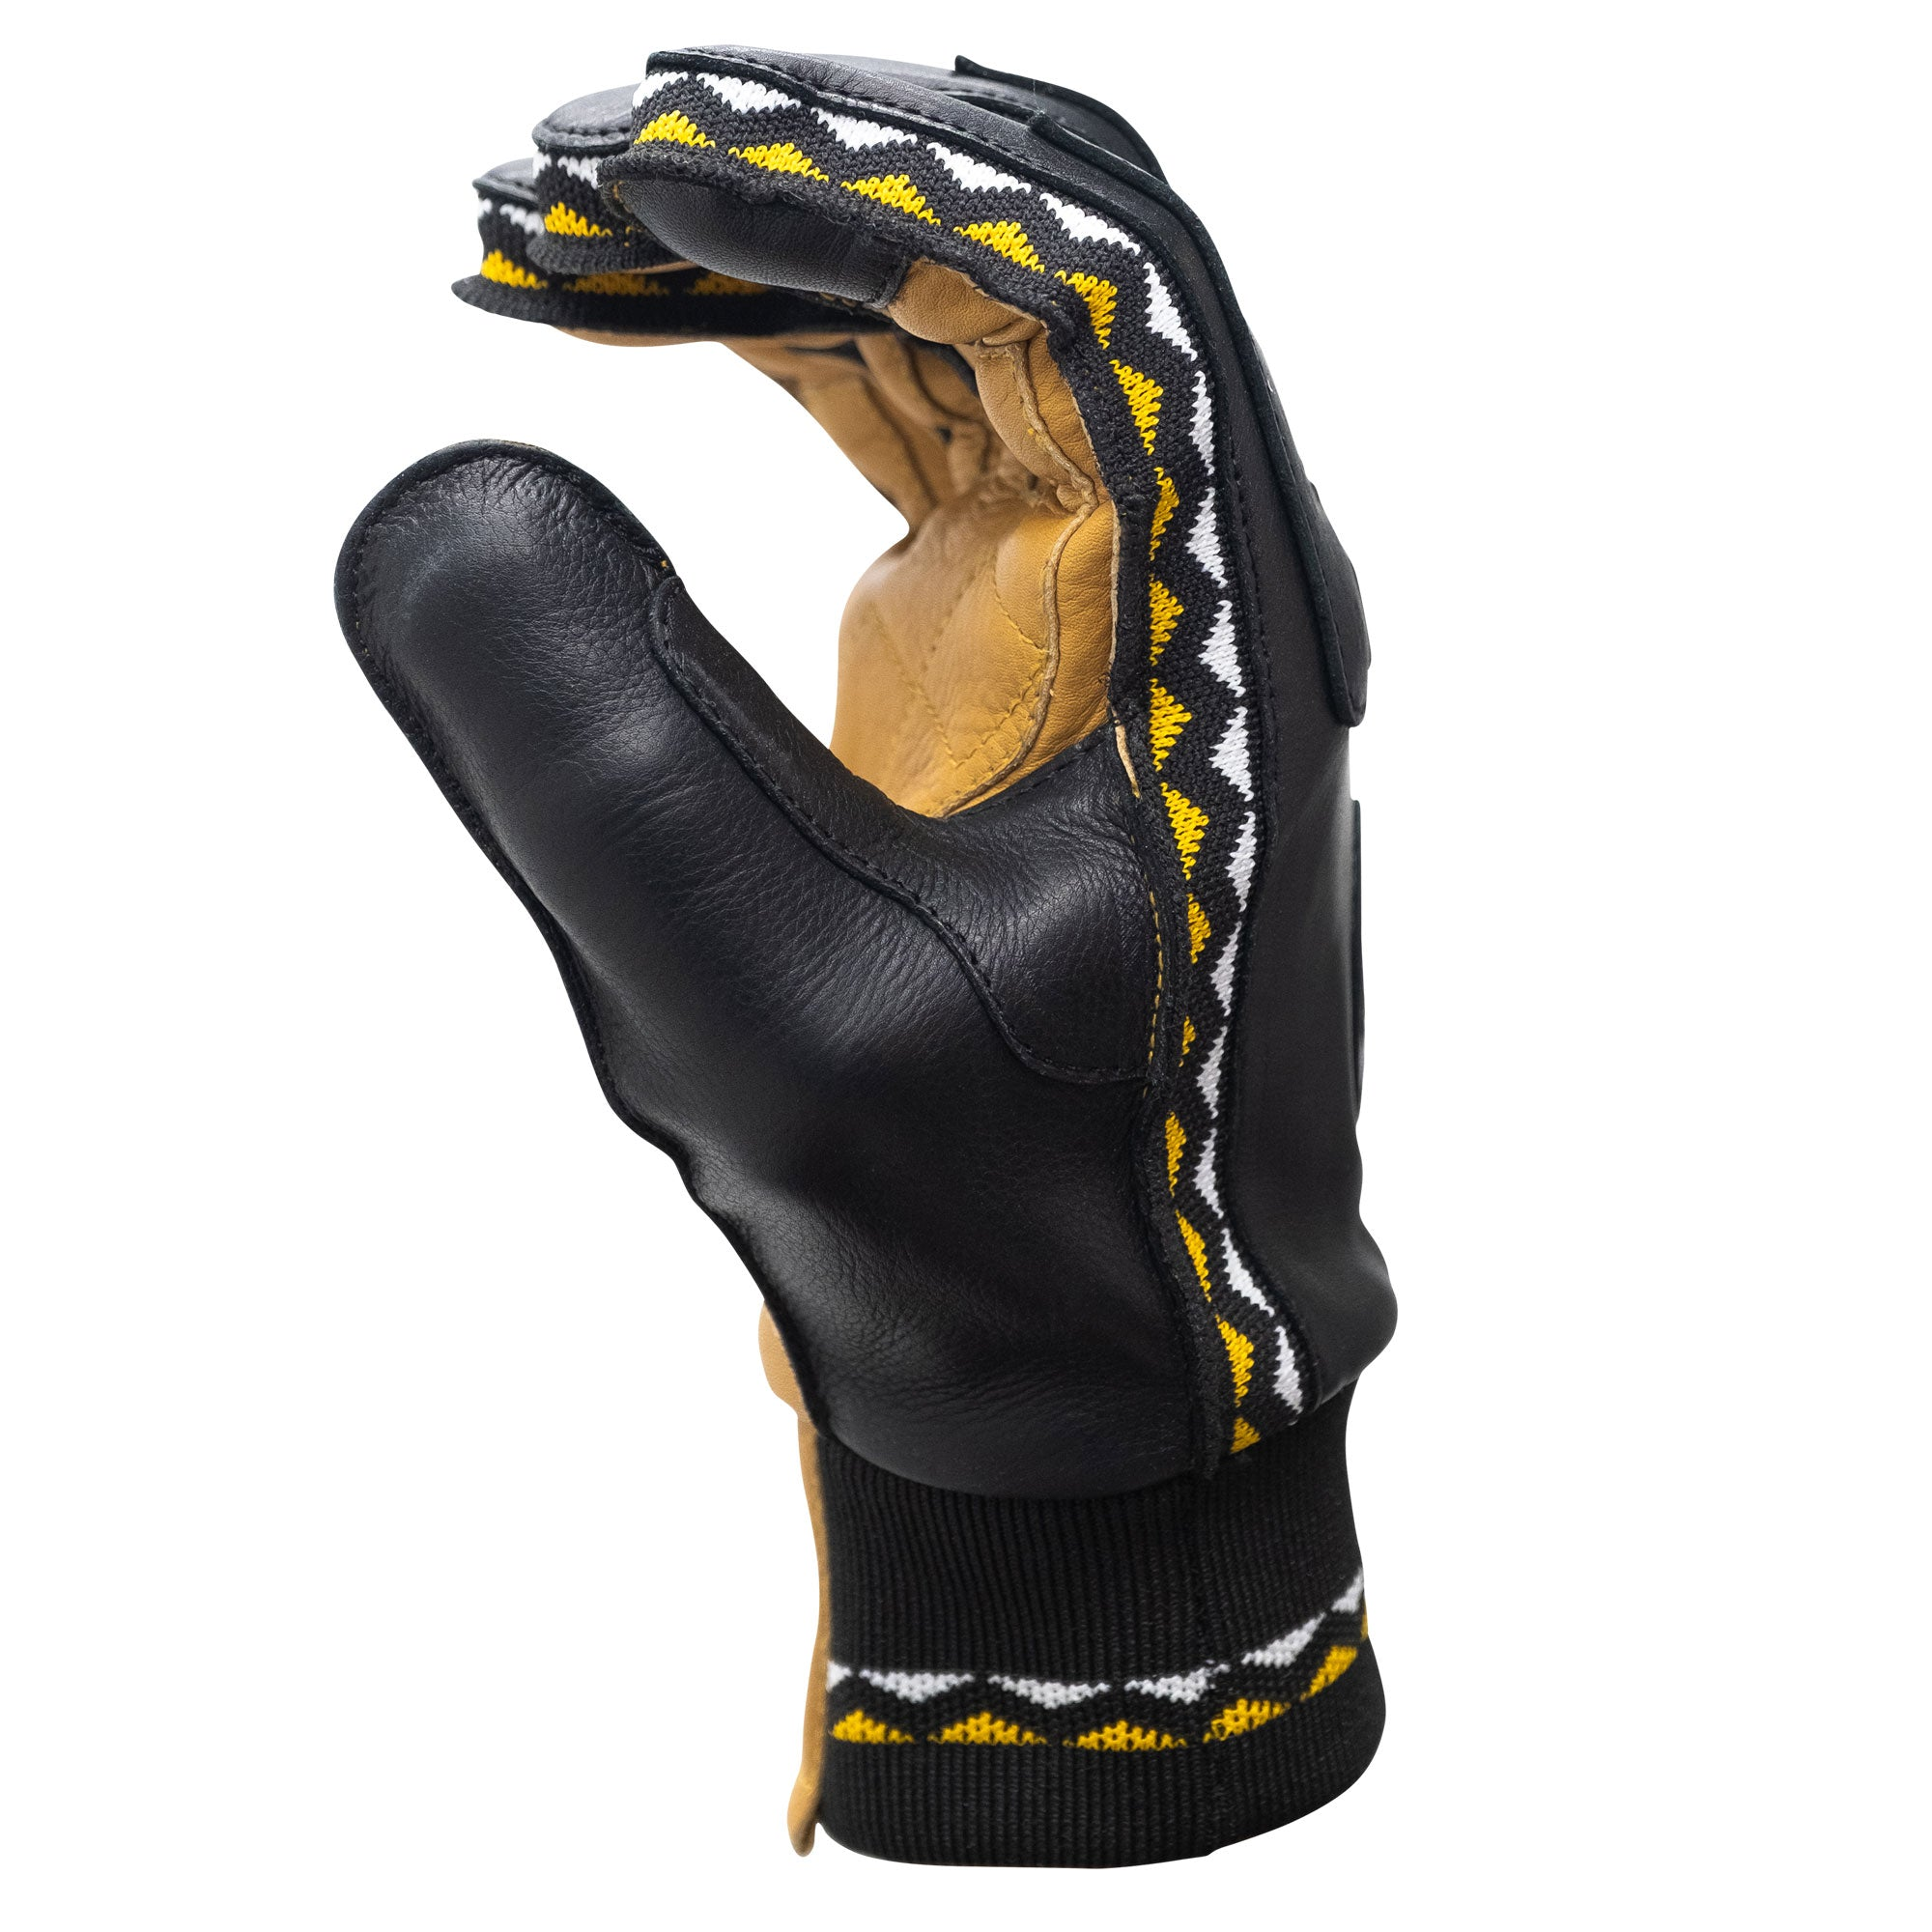 Tracker Glove - Black